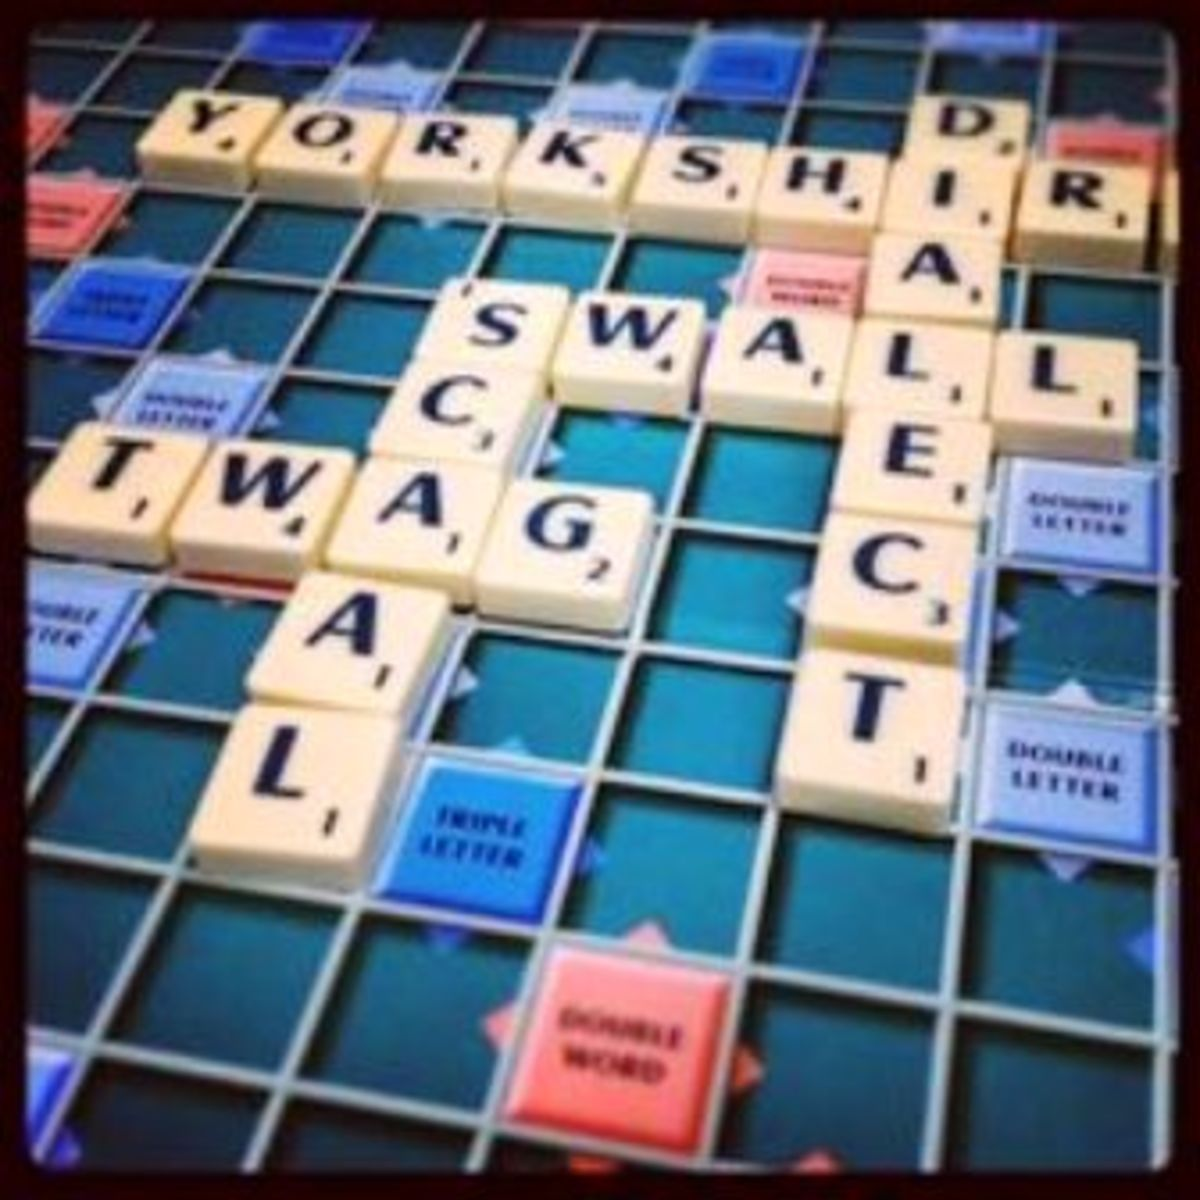 Test your knowledge of Yorkshire and its dialects with this new version of Scrabble